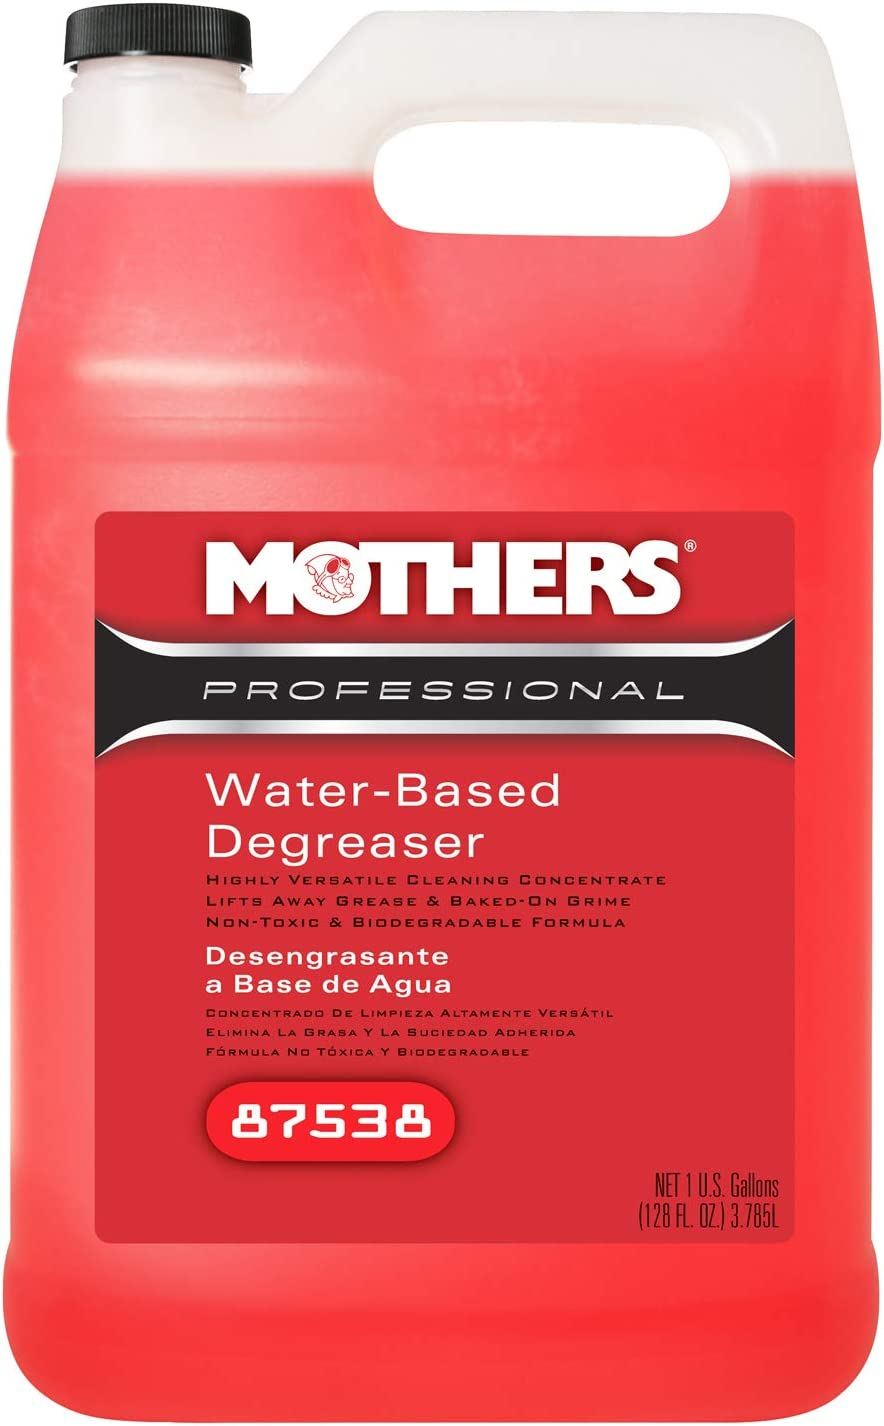 Mothers 87538 Professional Water-Based Gallon Max Jacksonville Mall 59% OFF Degreaser 1